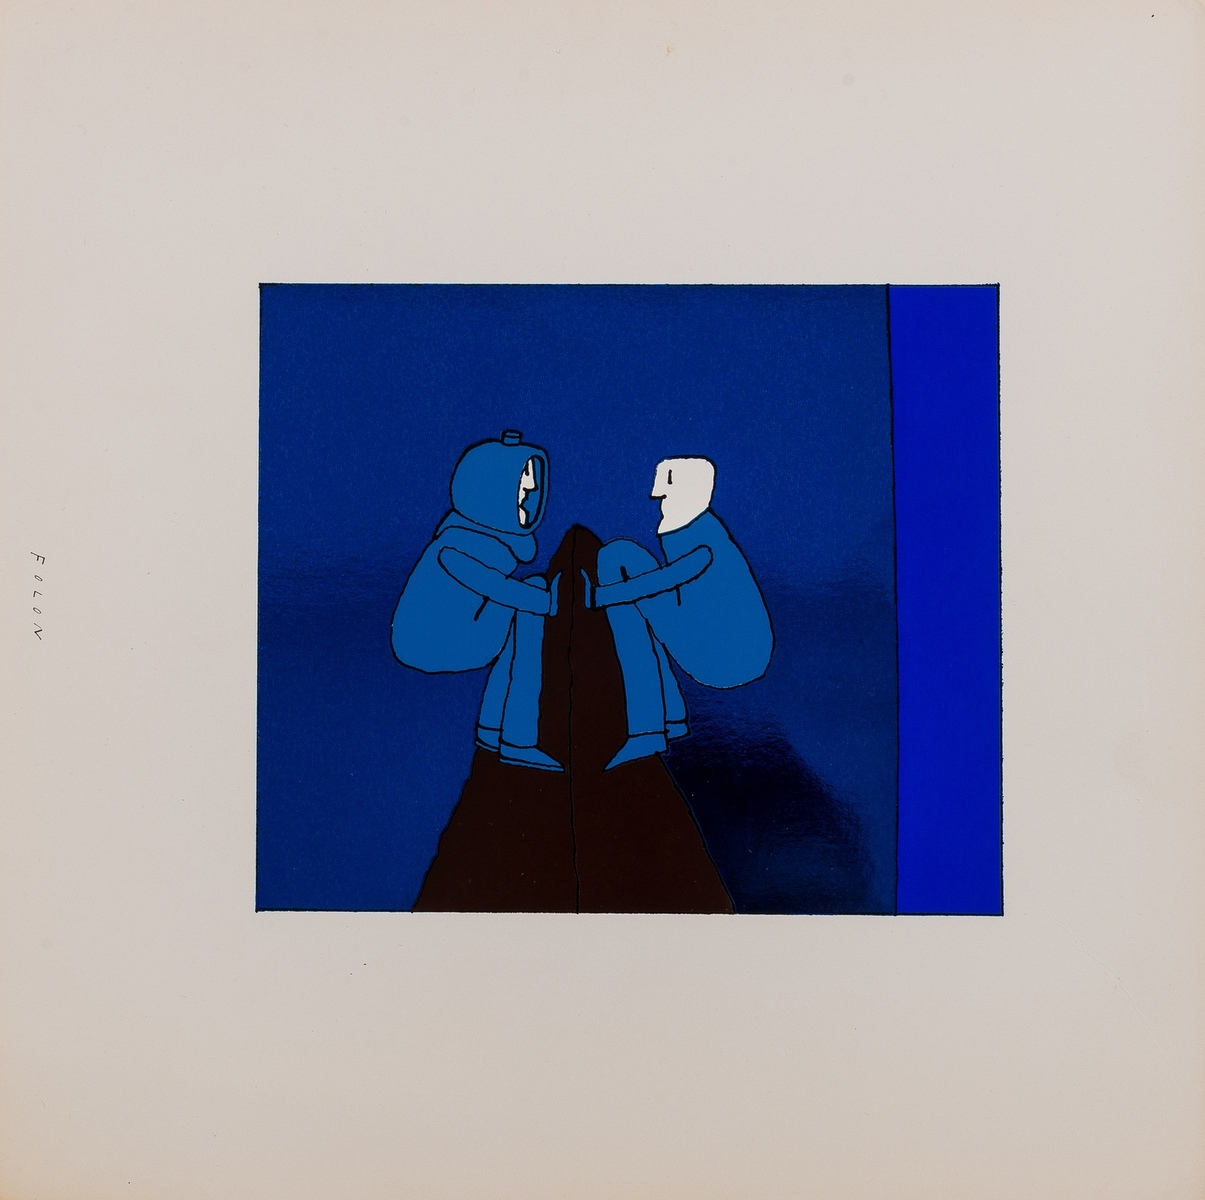 Dieter Roth (1930-1998) and Various Artists ICI portfolio